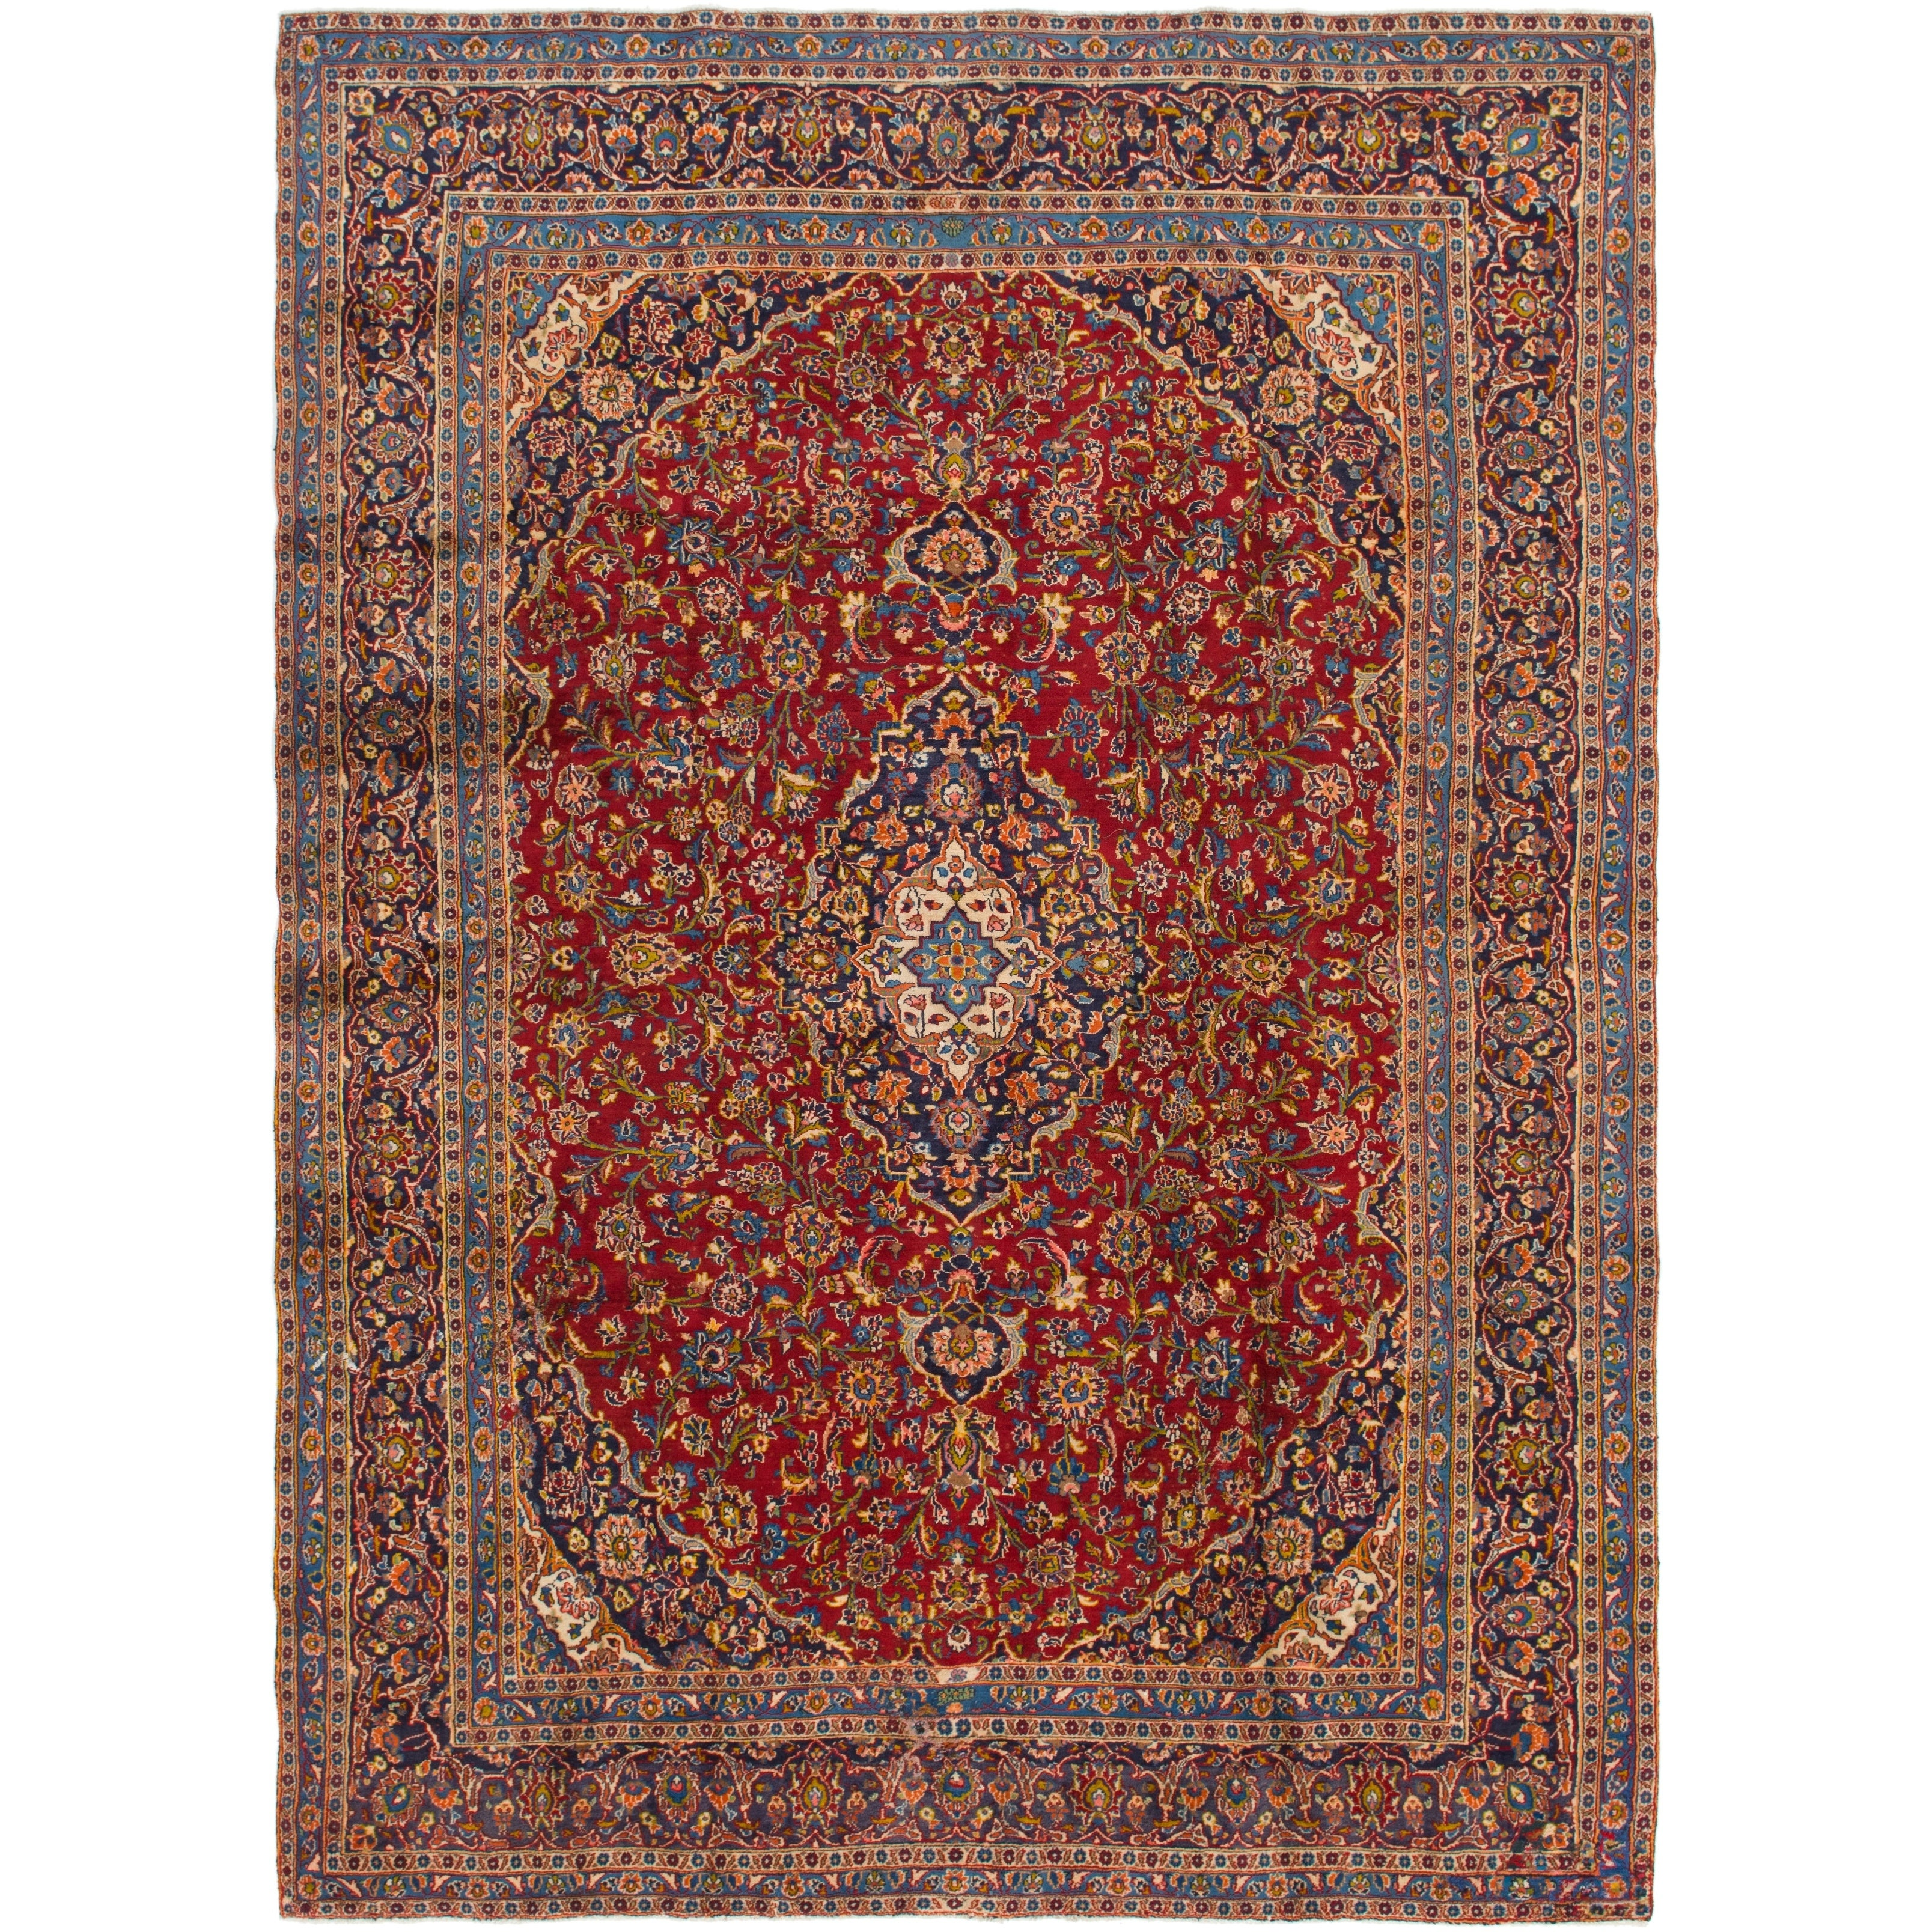 Hand Knotted Kashan Semi Antique Wool Area Rug - 9 4 x 13 (Red - 9 4 x 13)